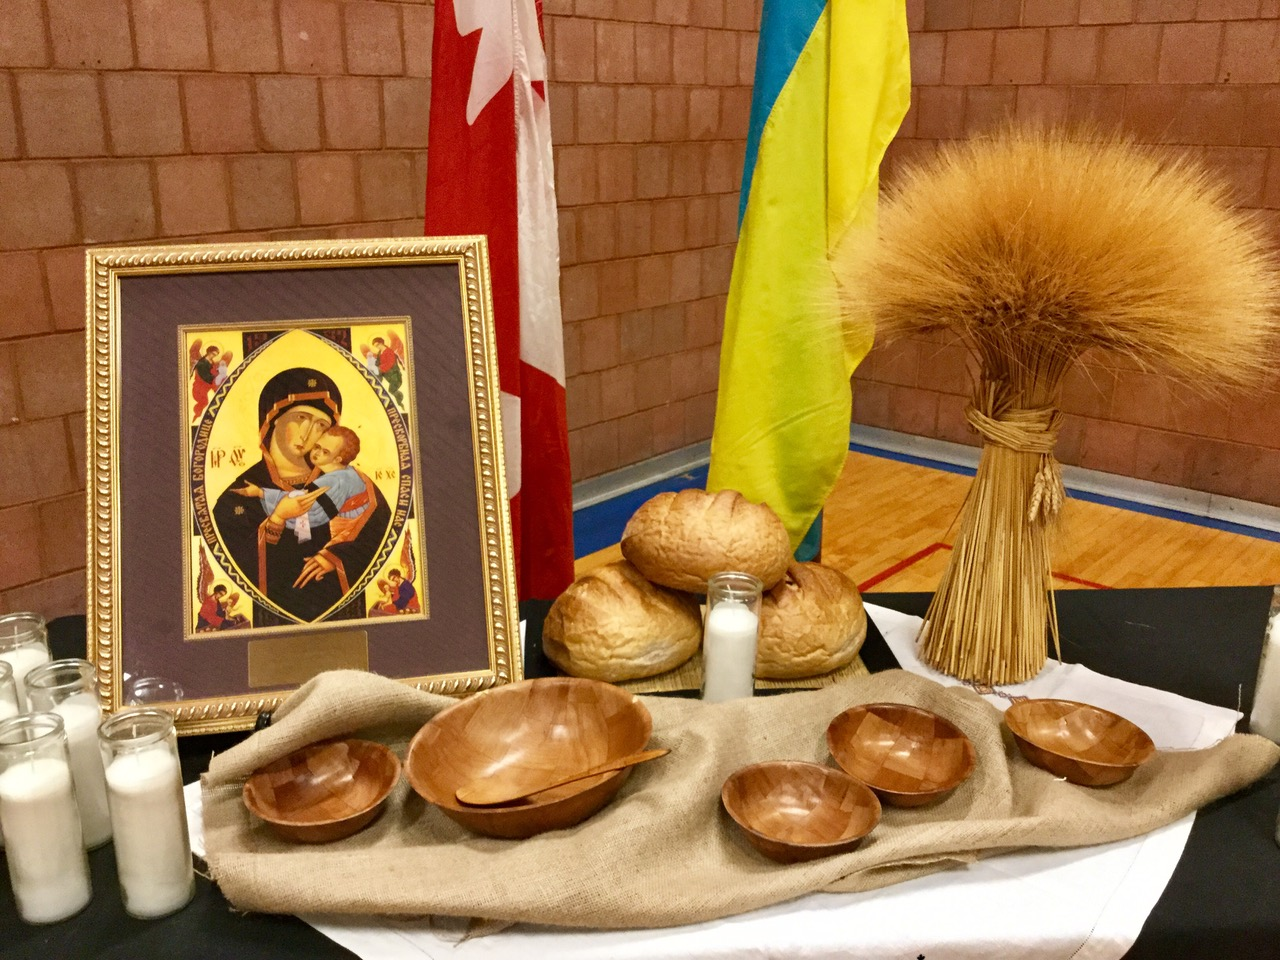 Holodomor 'one of the darkest chapters in human history'